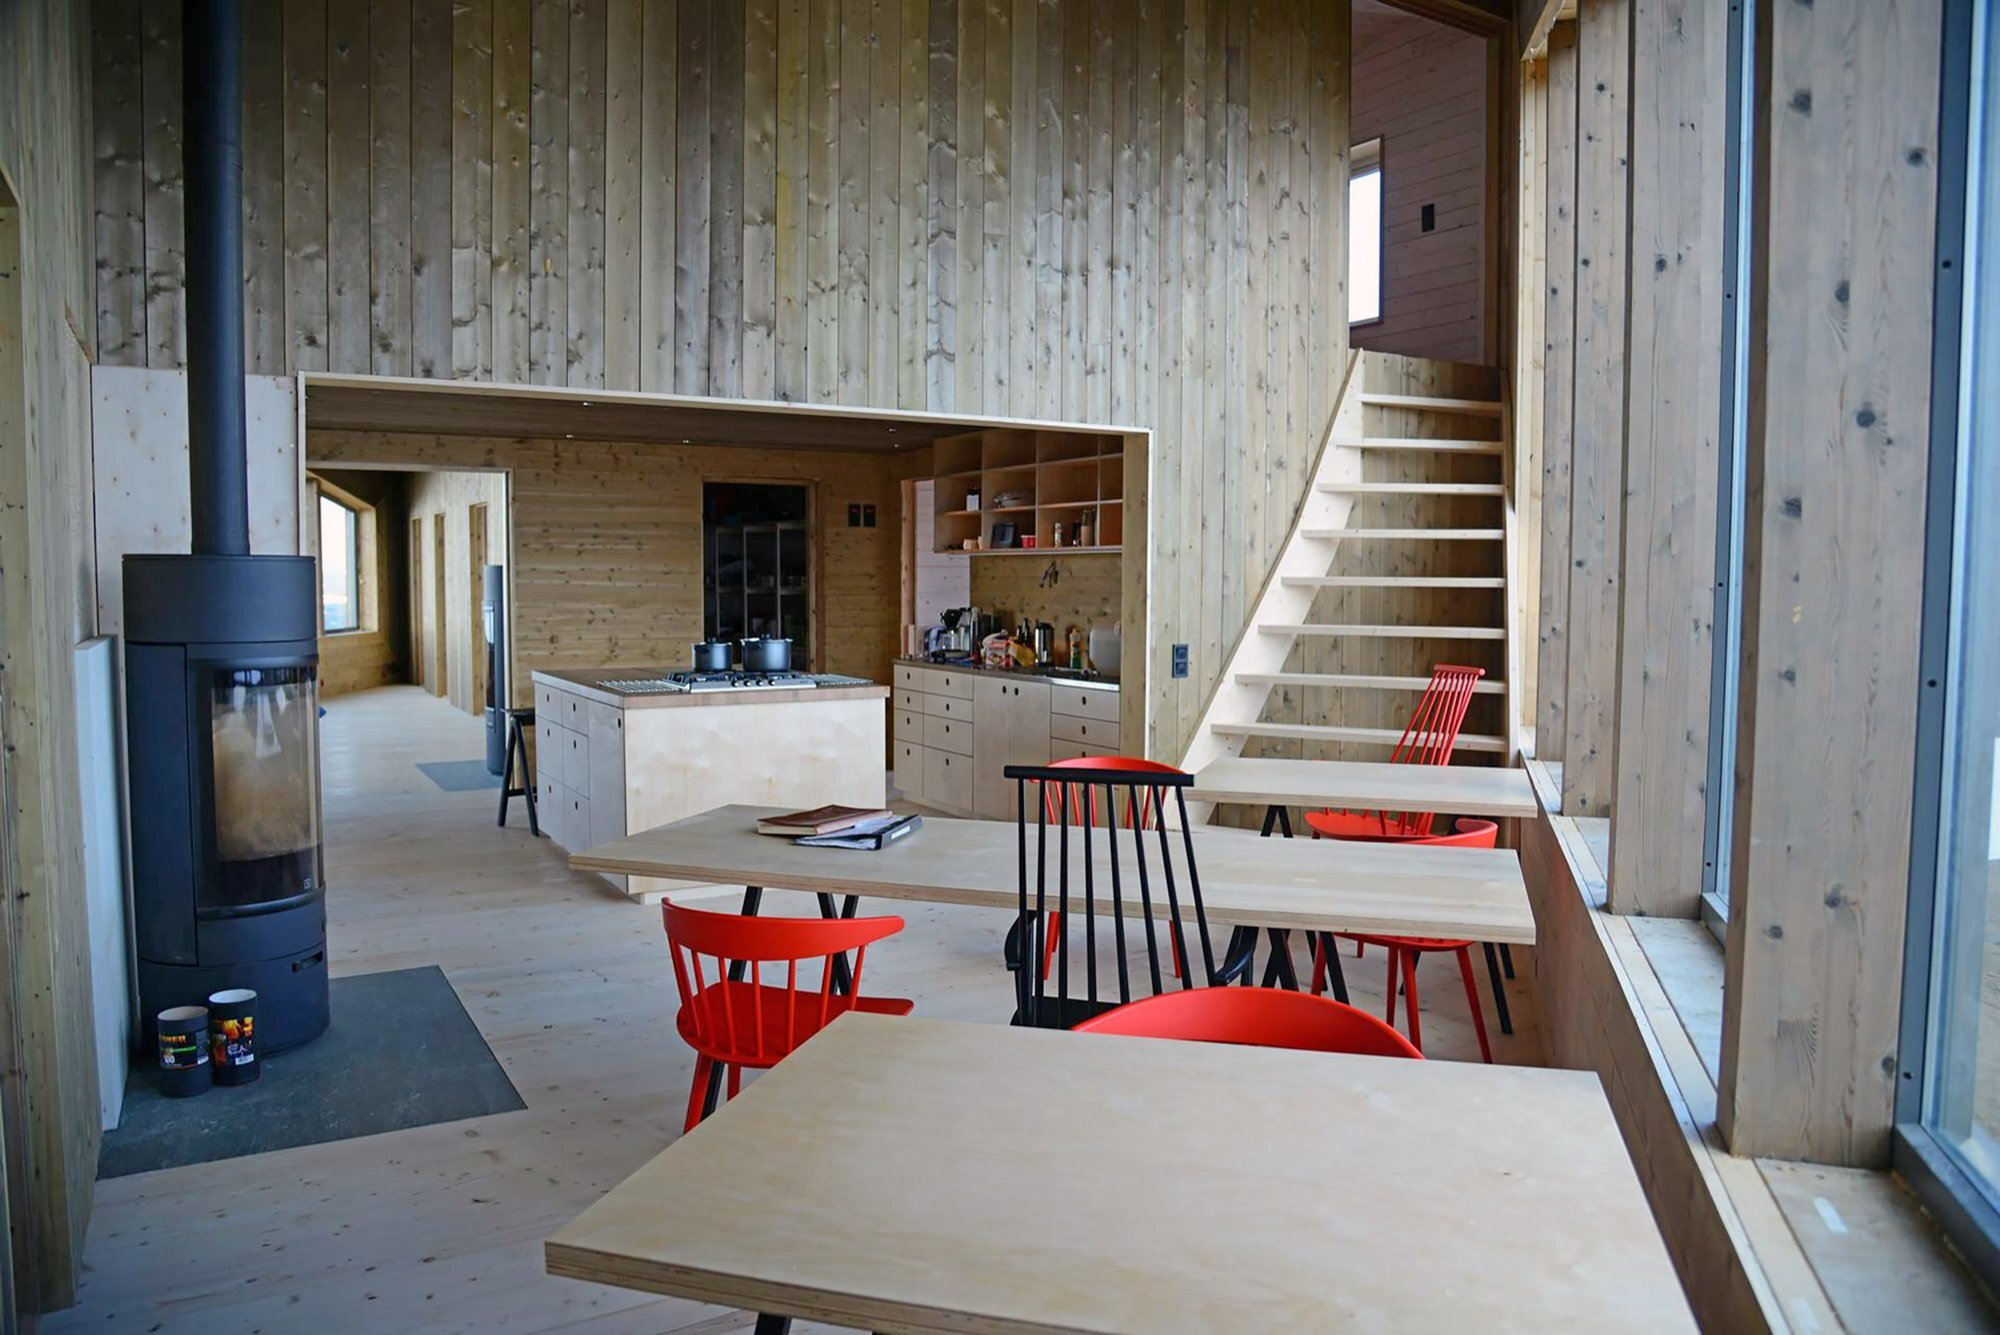 Rabot Tourist Cabin - JVA - Norway - Retreat - Kitchen & Dining Area - Humble Homes